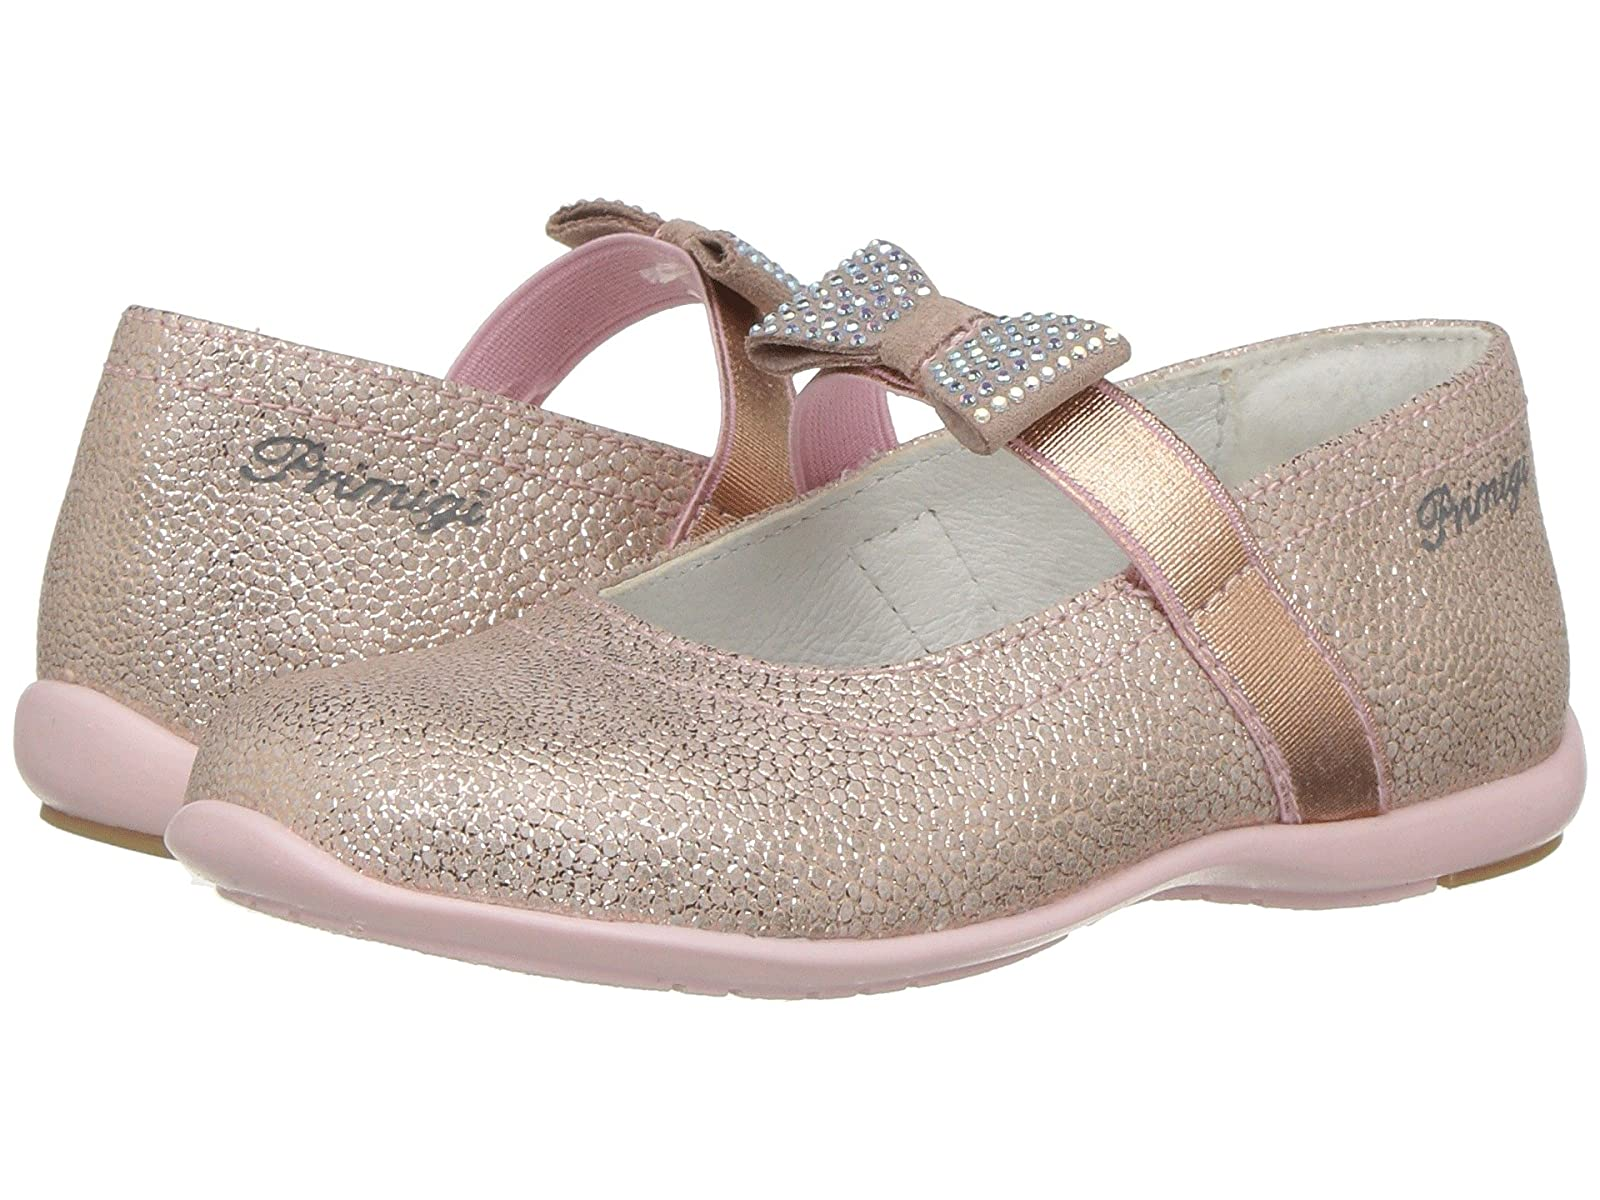 Primigi Kids PHE 14182 (Toddler/Little Kid)Atmospheric grades have affordable shoes